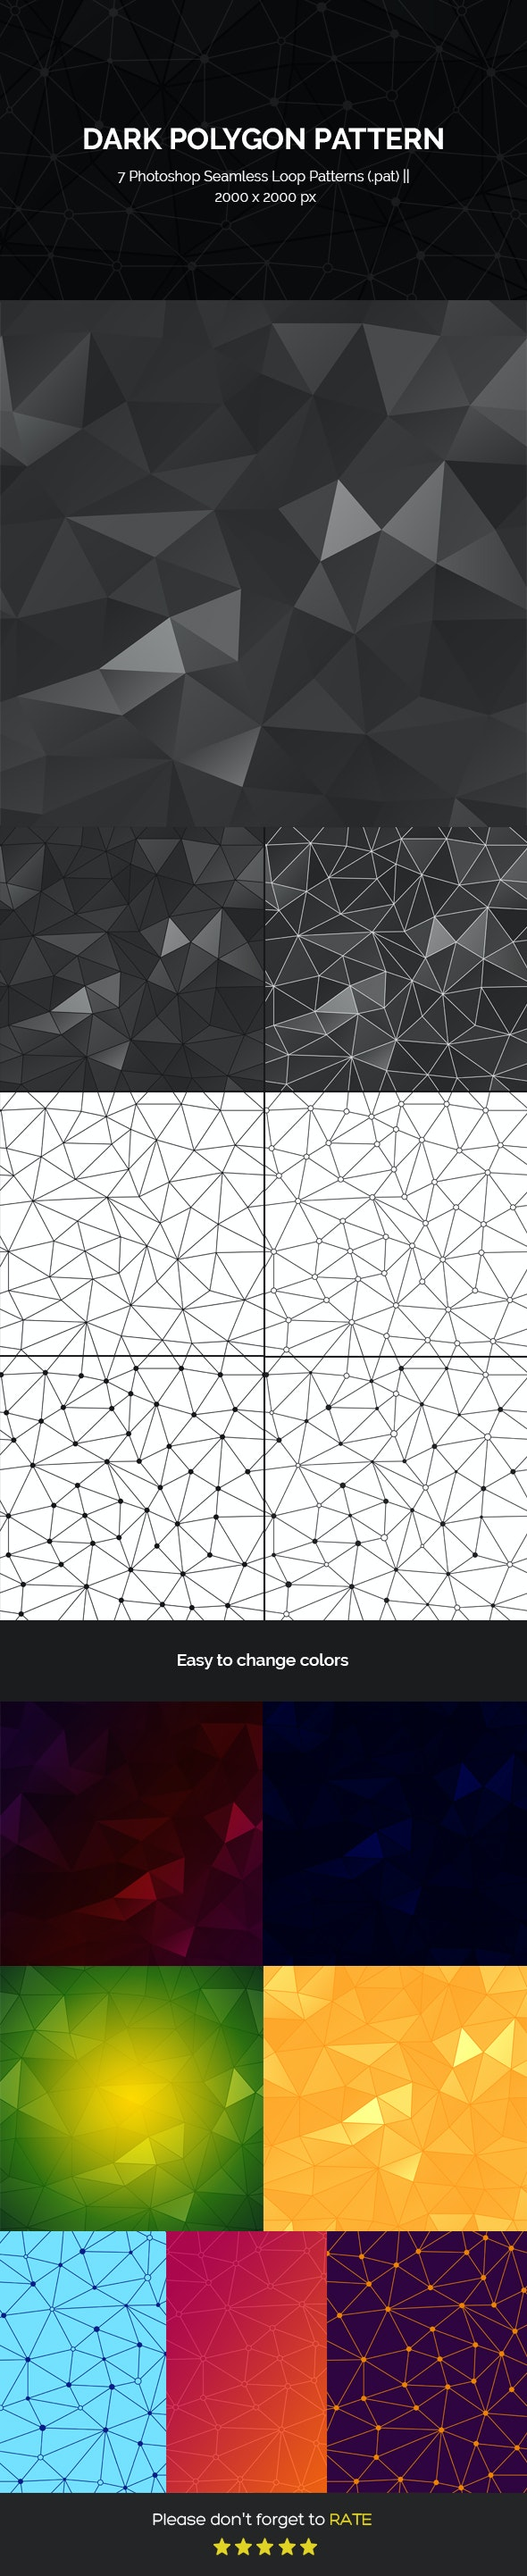 Polygon Seamless Loop Photoshop Patterns - Textures / Fills / Patterns Photoshop